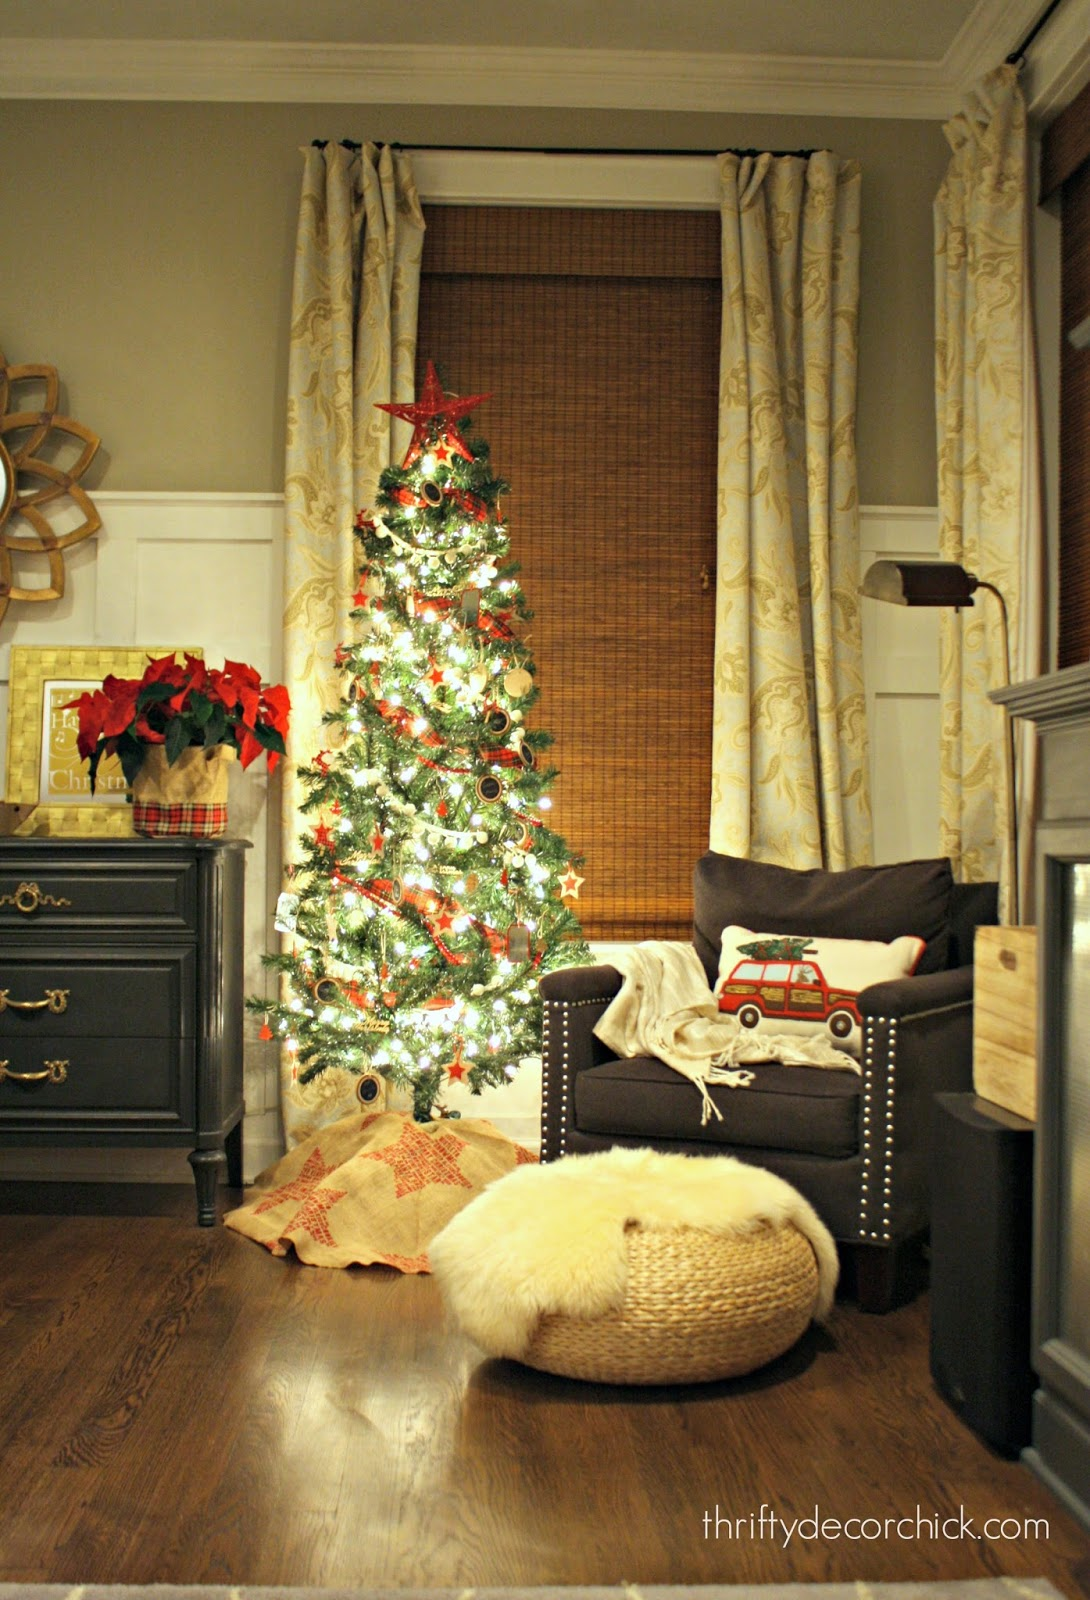 Inexpensive Ornament Ideas